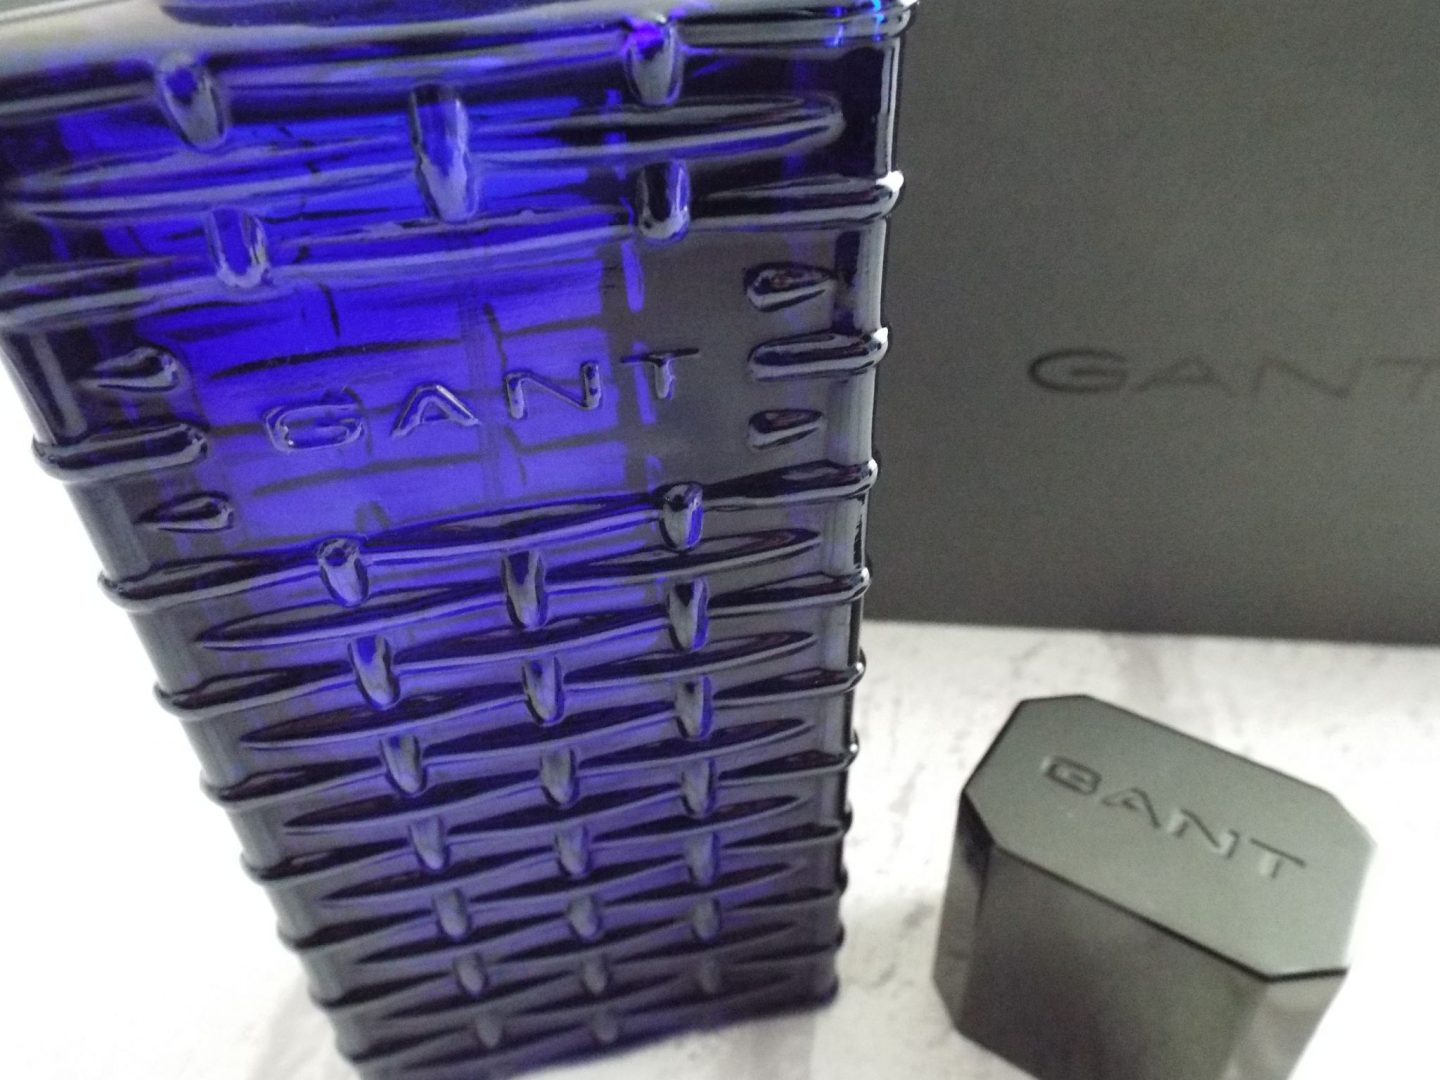 GANT For Men Fragrance Review